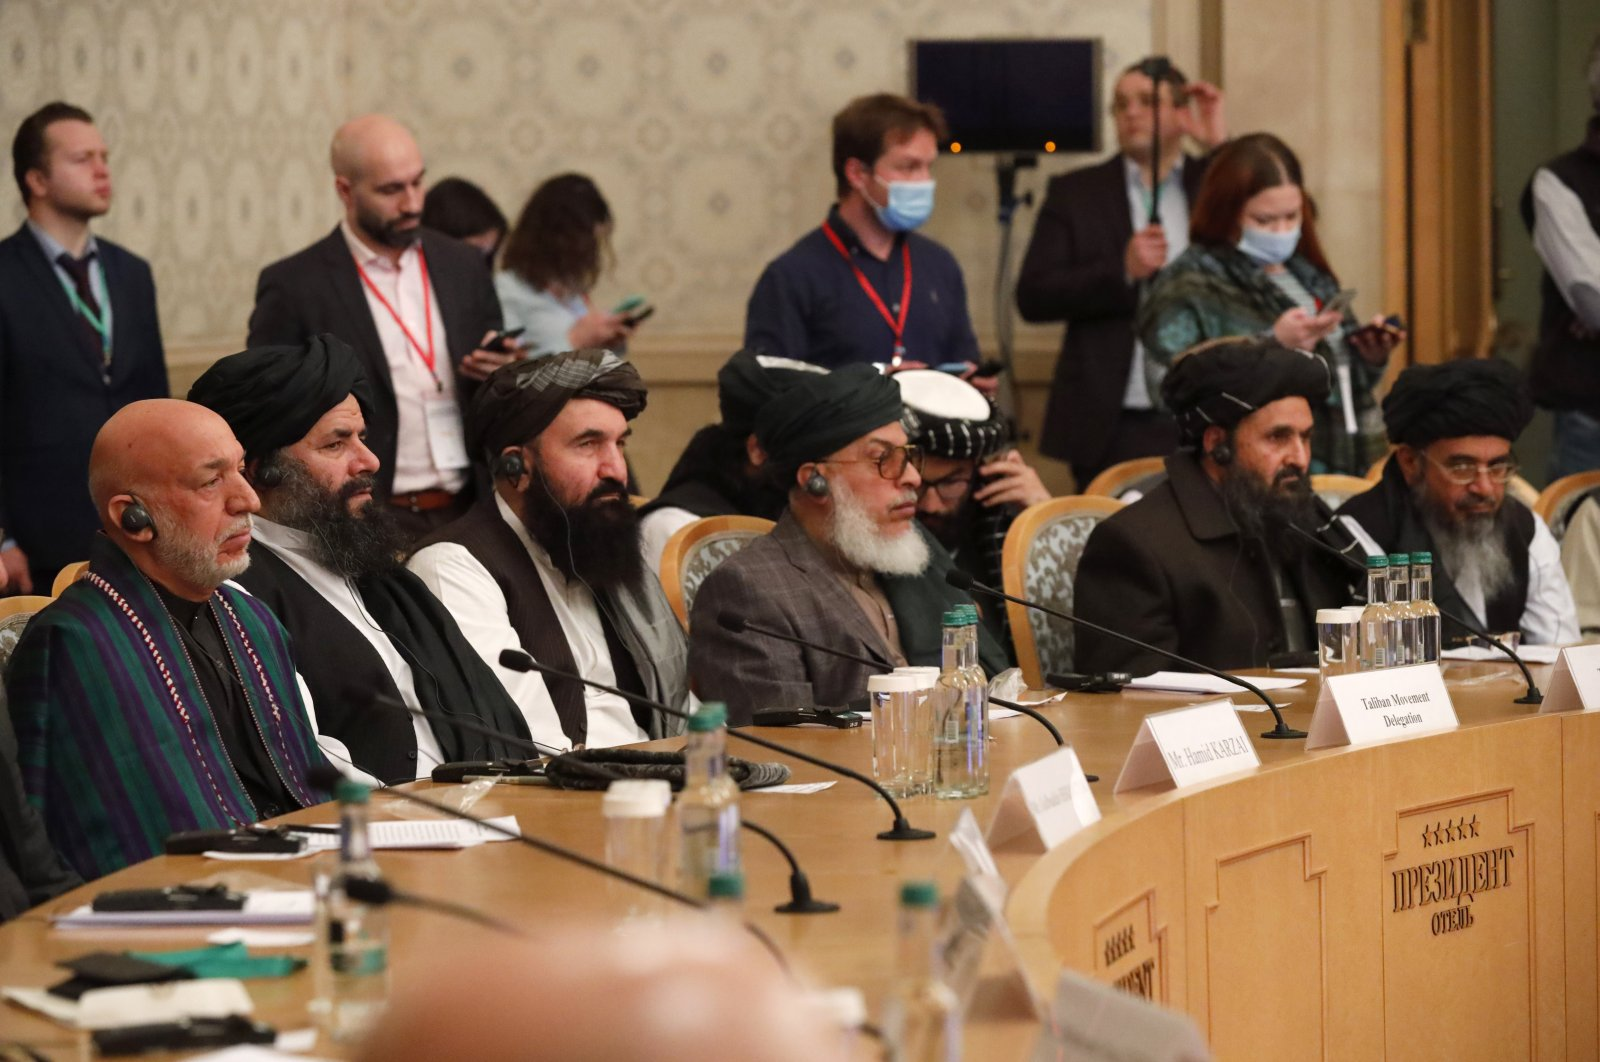 Former President Hamid Karzai (left) and Taliban co-founder Mullah Abdul Ghani Baradar (second right) attend an international peace conference in Moscow, Russia, March 18, 2021. (AP Photo)